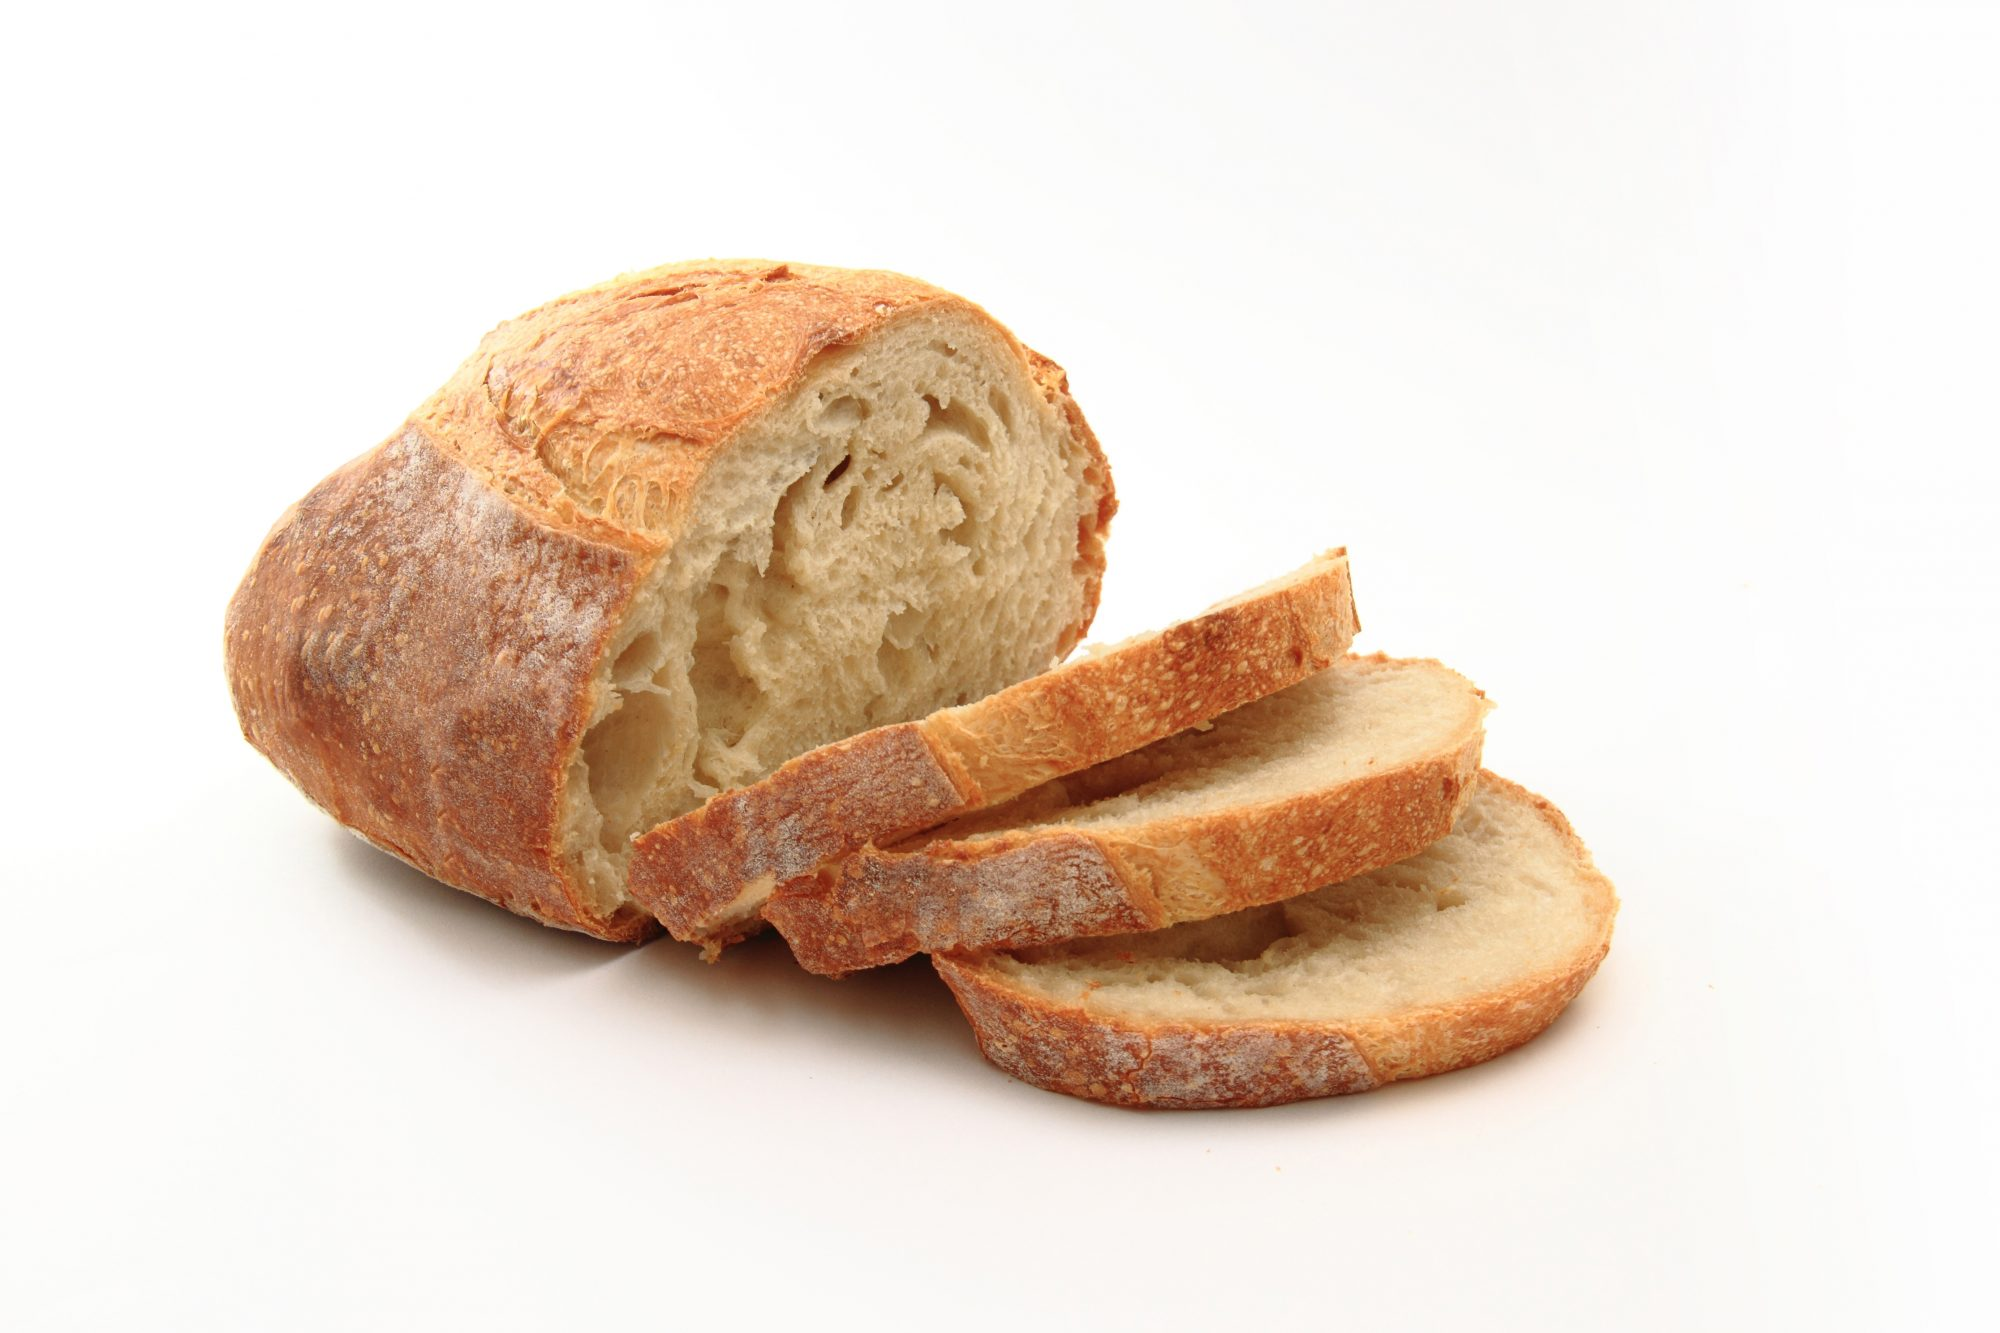 getty-bread-loaf-image